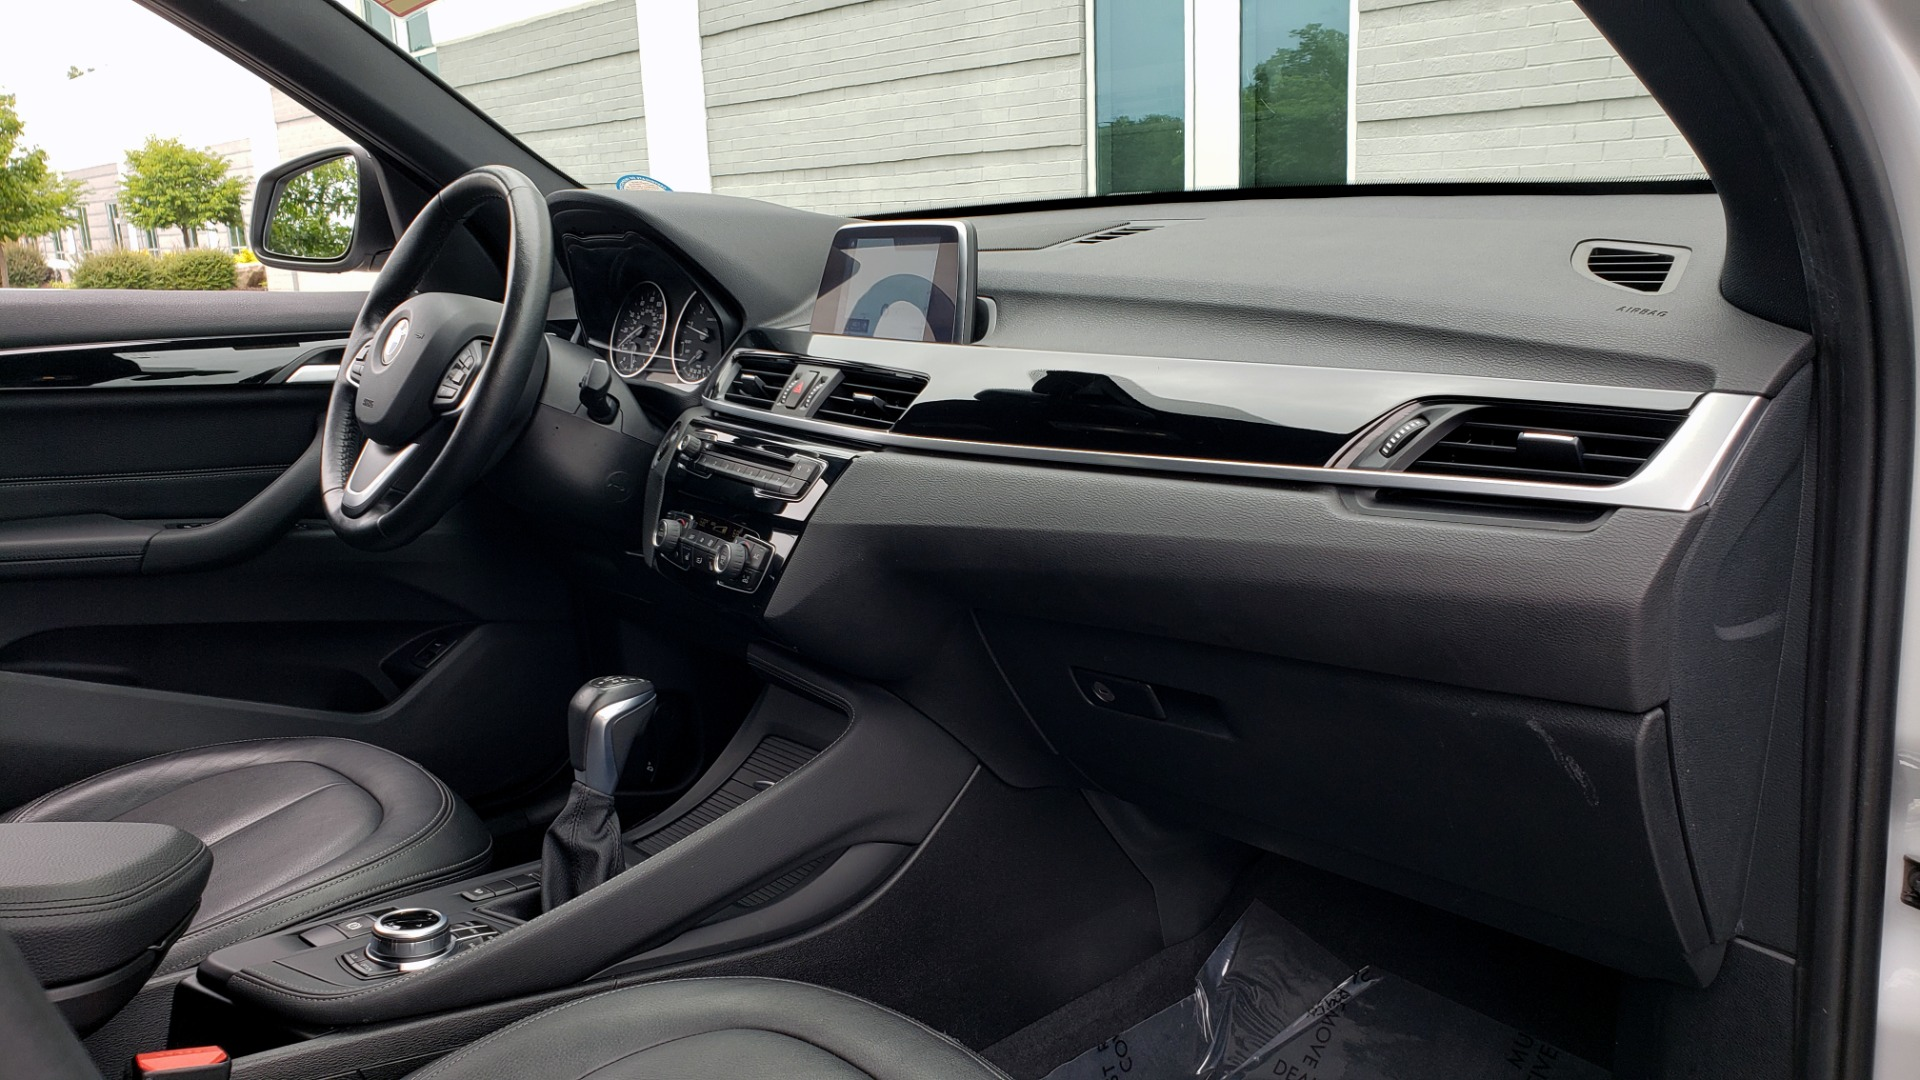 Used 2018 BMW X1 XDRIVE38I / NAV / CONV PKG / PANO-ROOF / HTD STS / REARVIEW for sale $28,995 at Formula Imports in Charlotte NC 28227 63